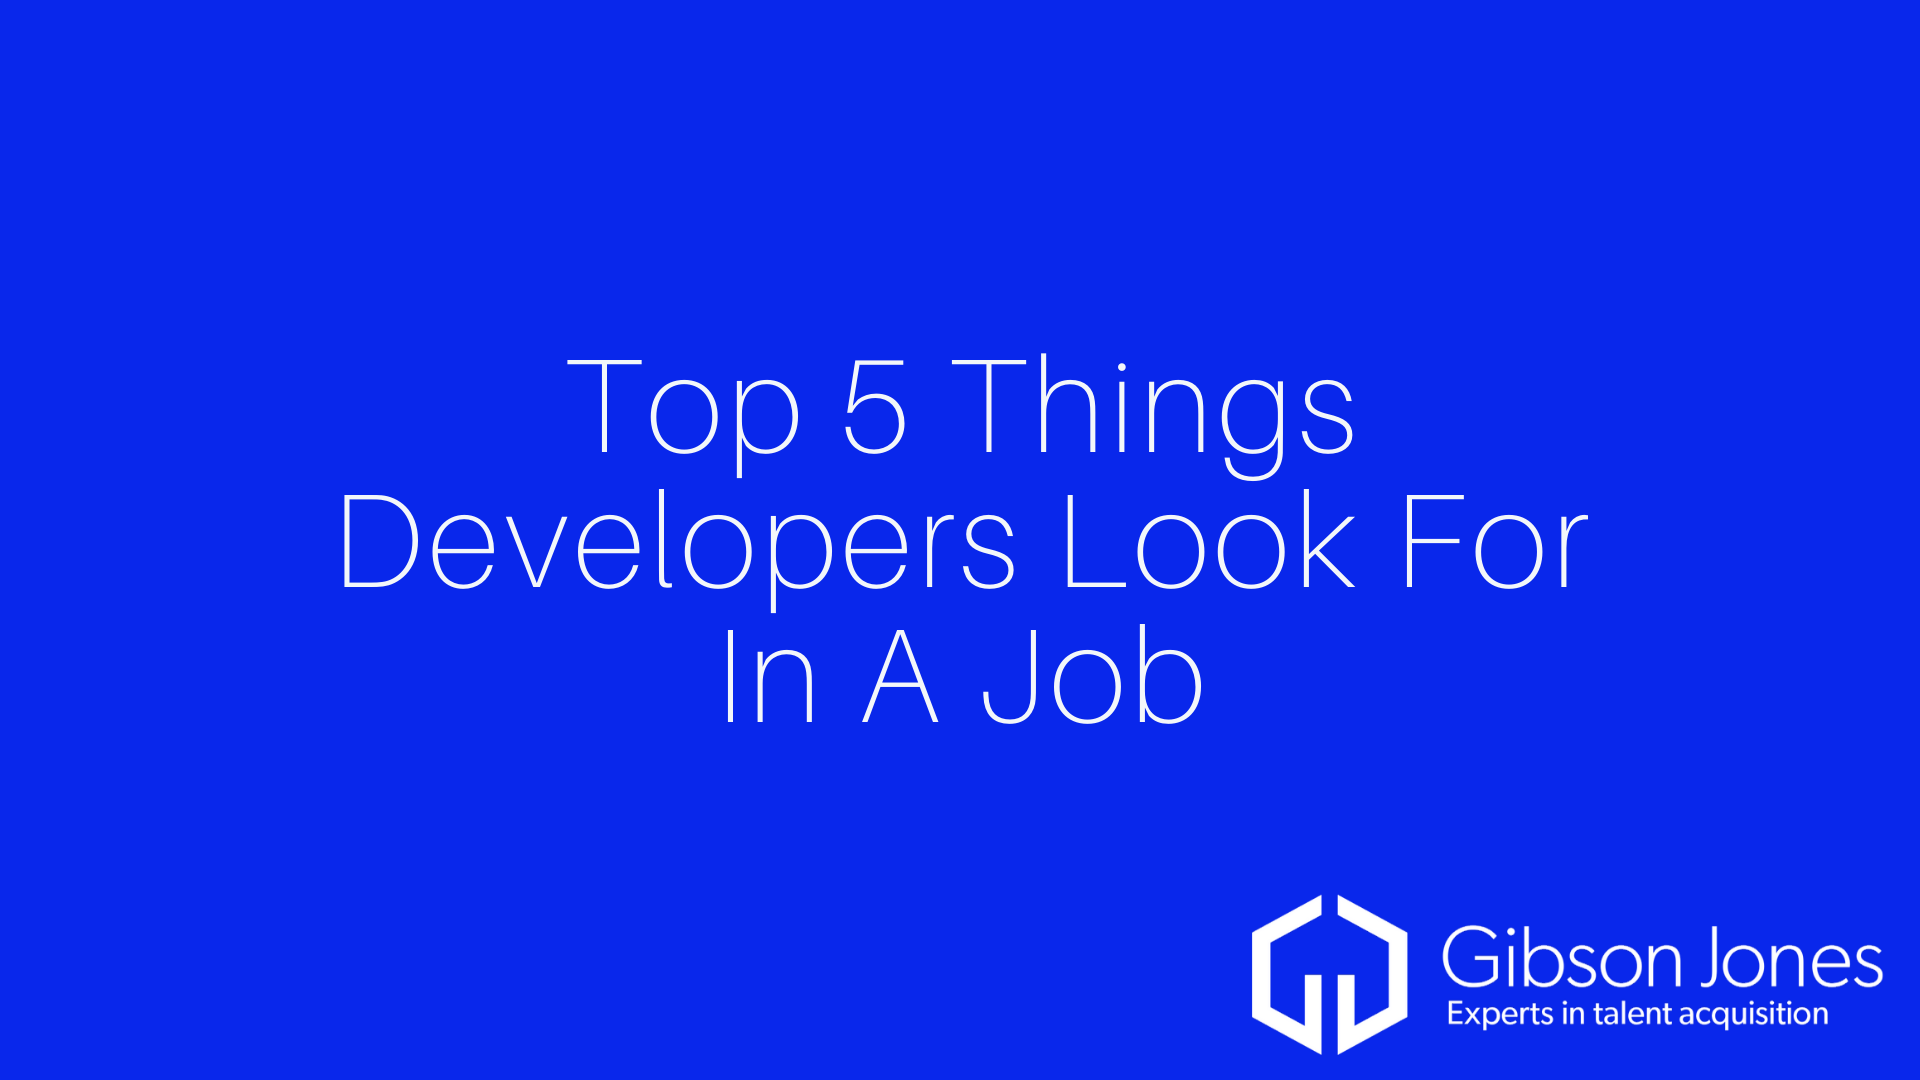 Top 5 Things Developers Look For In A Job